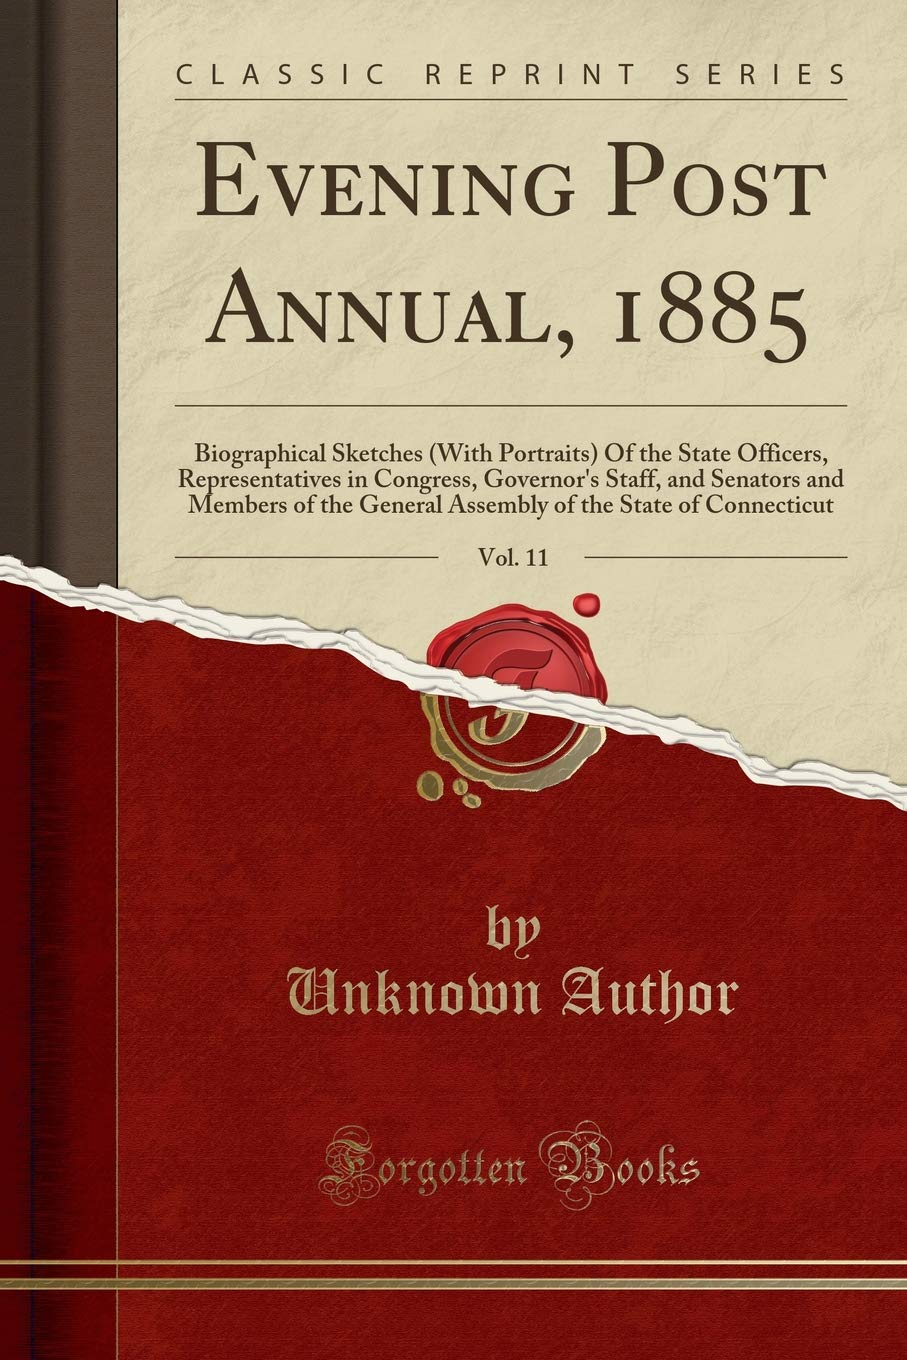 Evening Post Annual, 1885, Vol. 11: Biographical Sketches (With Portraits) Of the State Officers, Representatives in Congress, Governor's Staff, and ... of the State of Connecticut (Classic Reprint) PDF ePub fb2 ebook